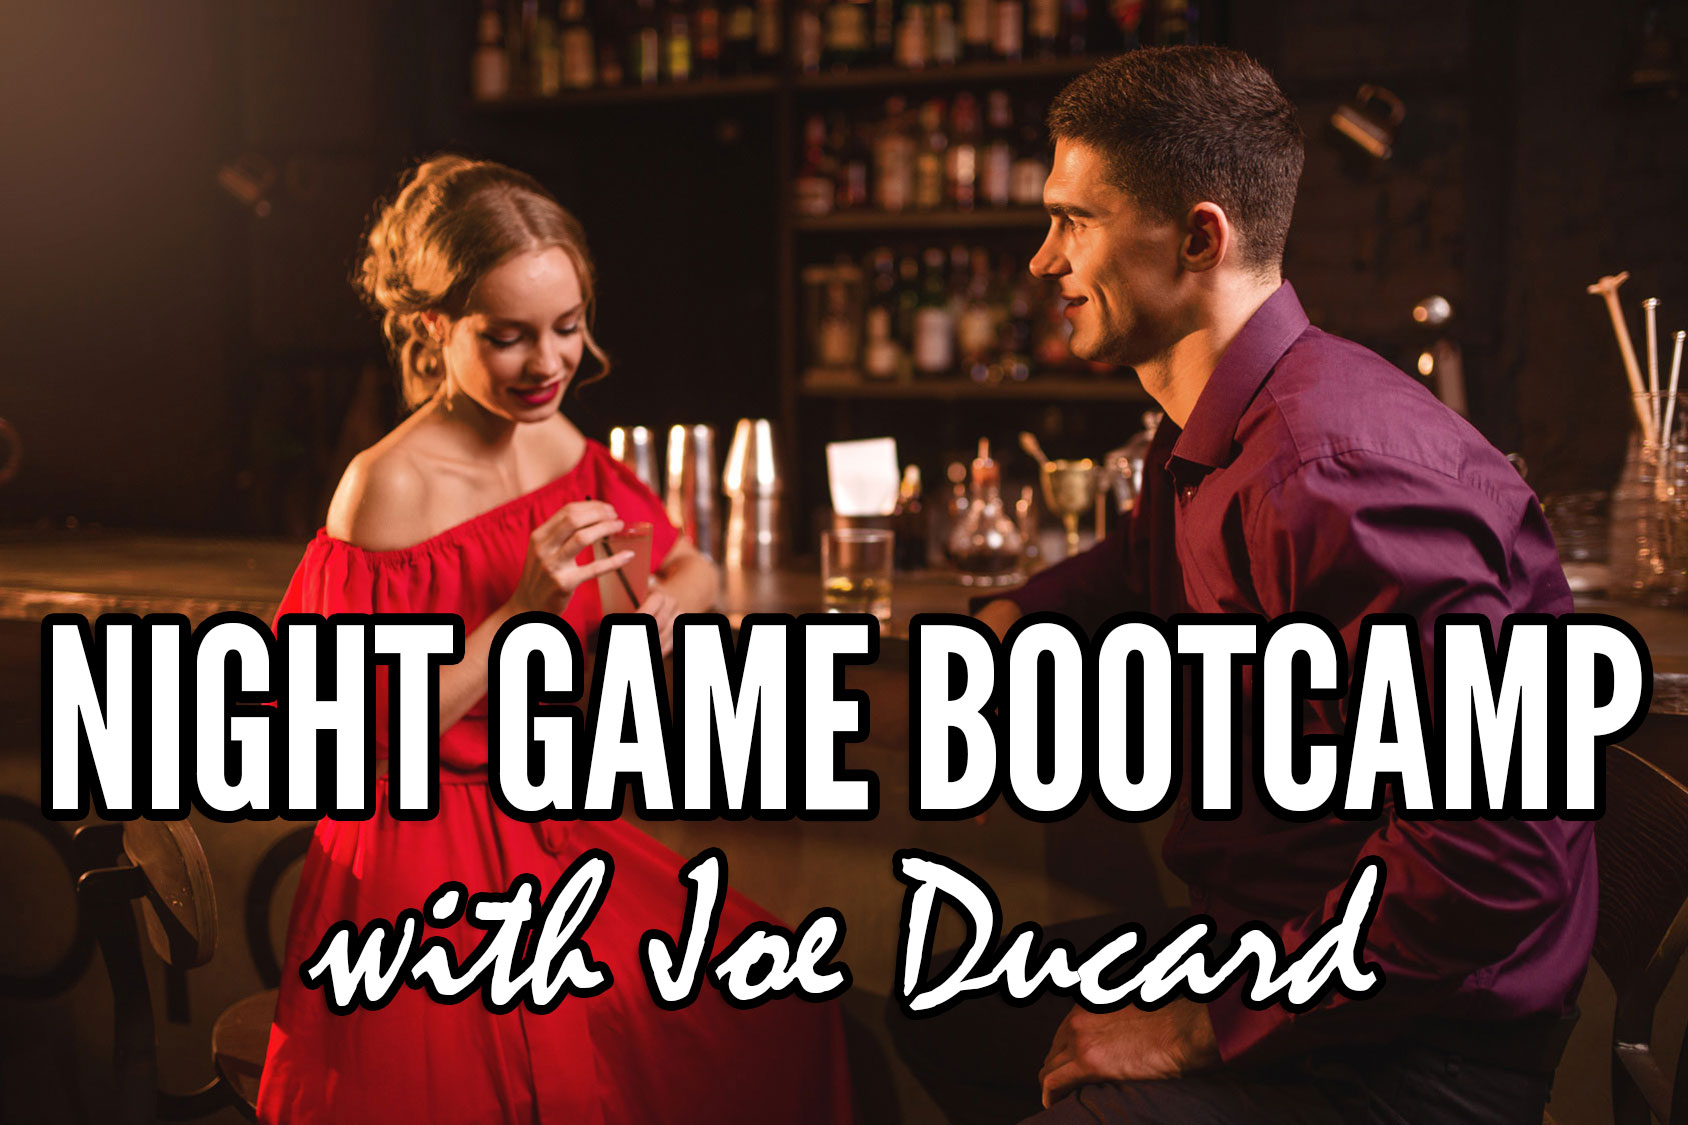 pickup bootcamp with joe ducard